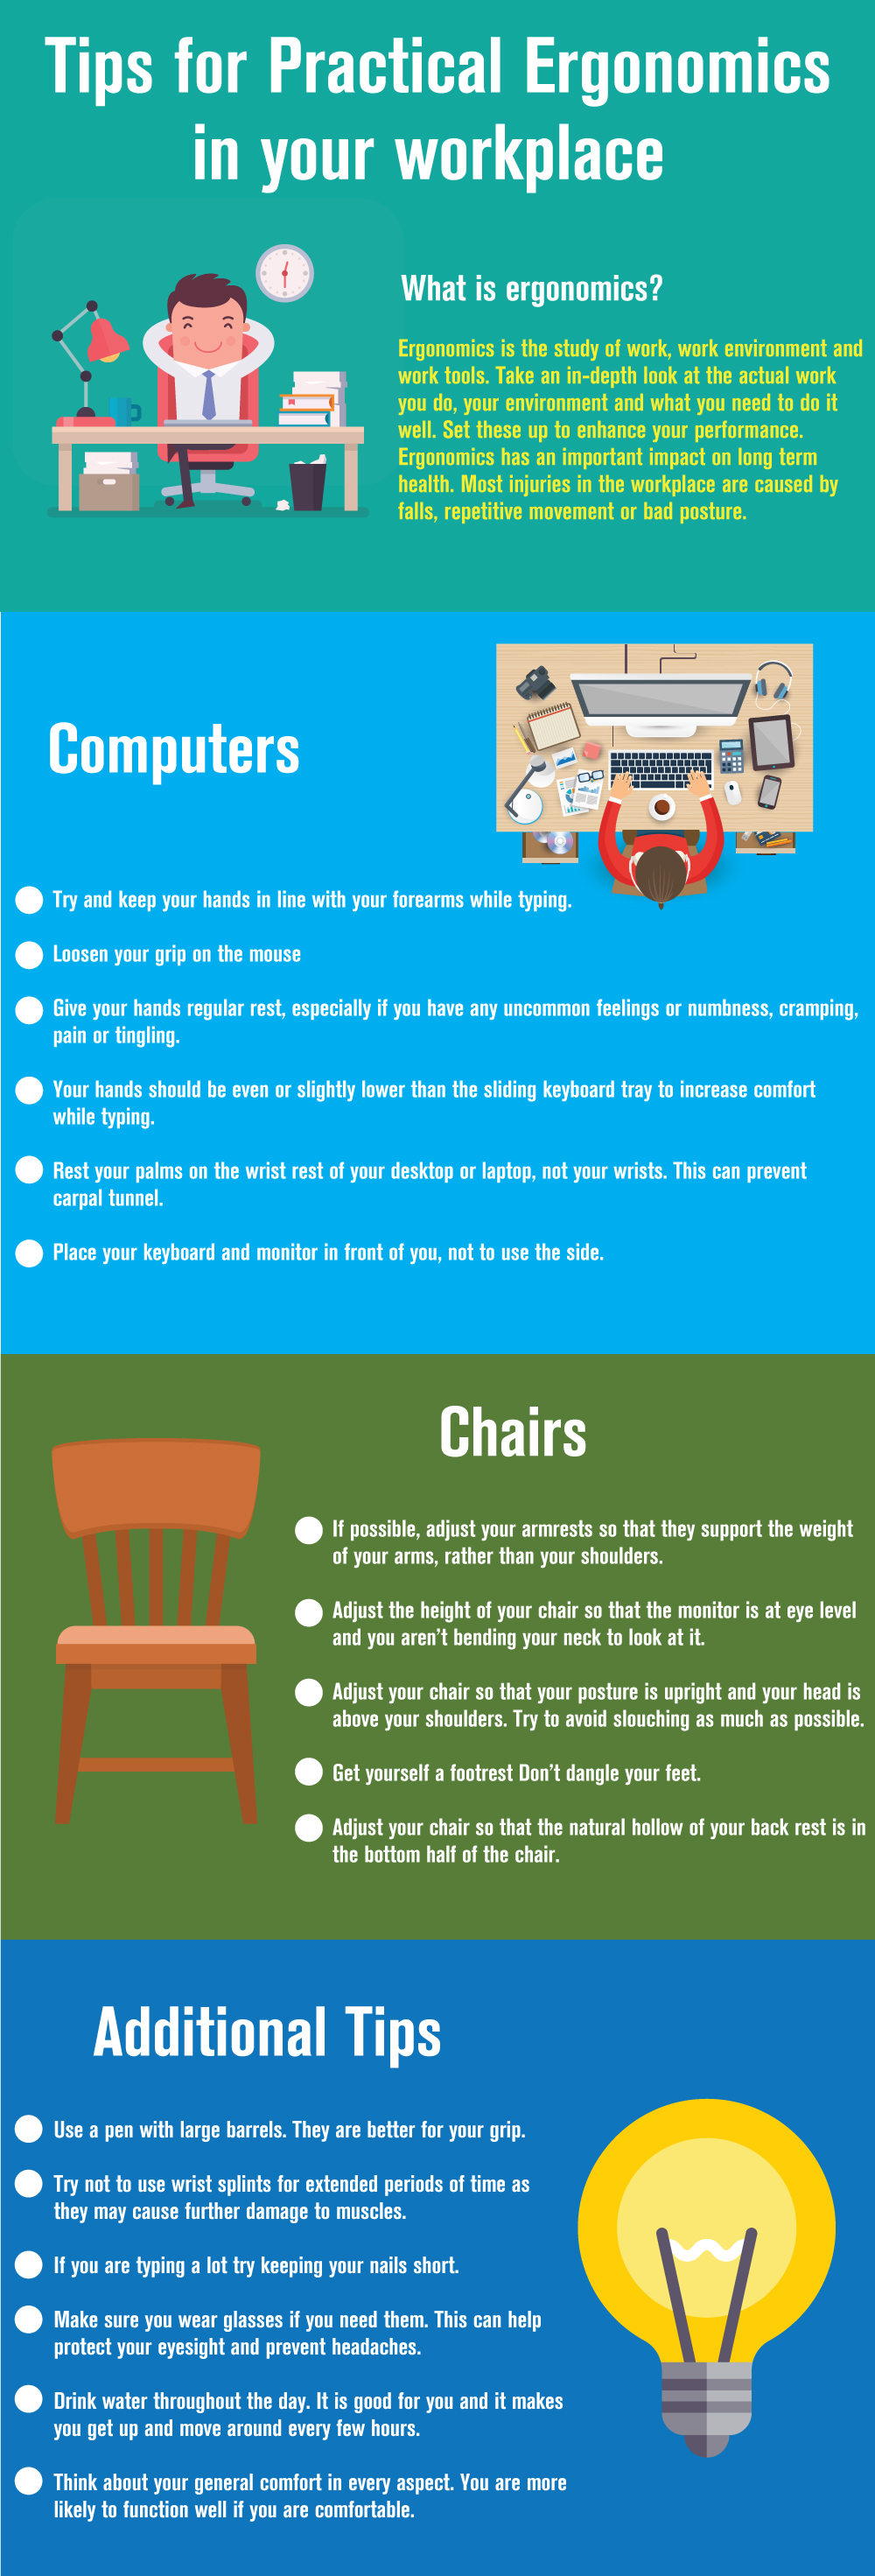 Tips for practical ergonomics in the workspace